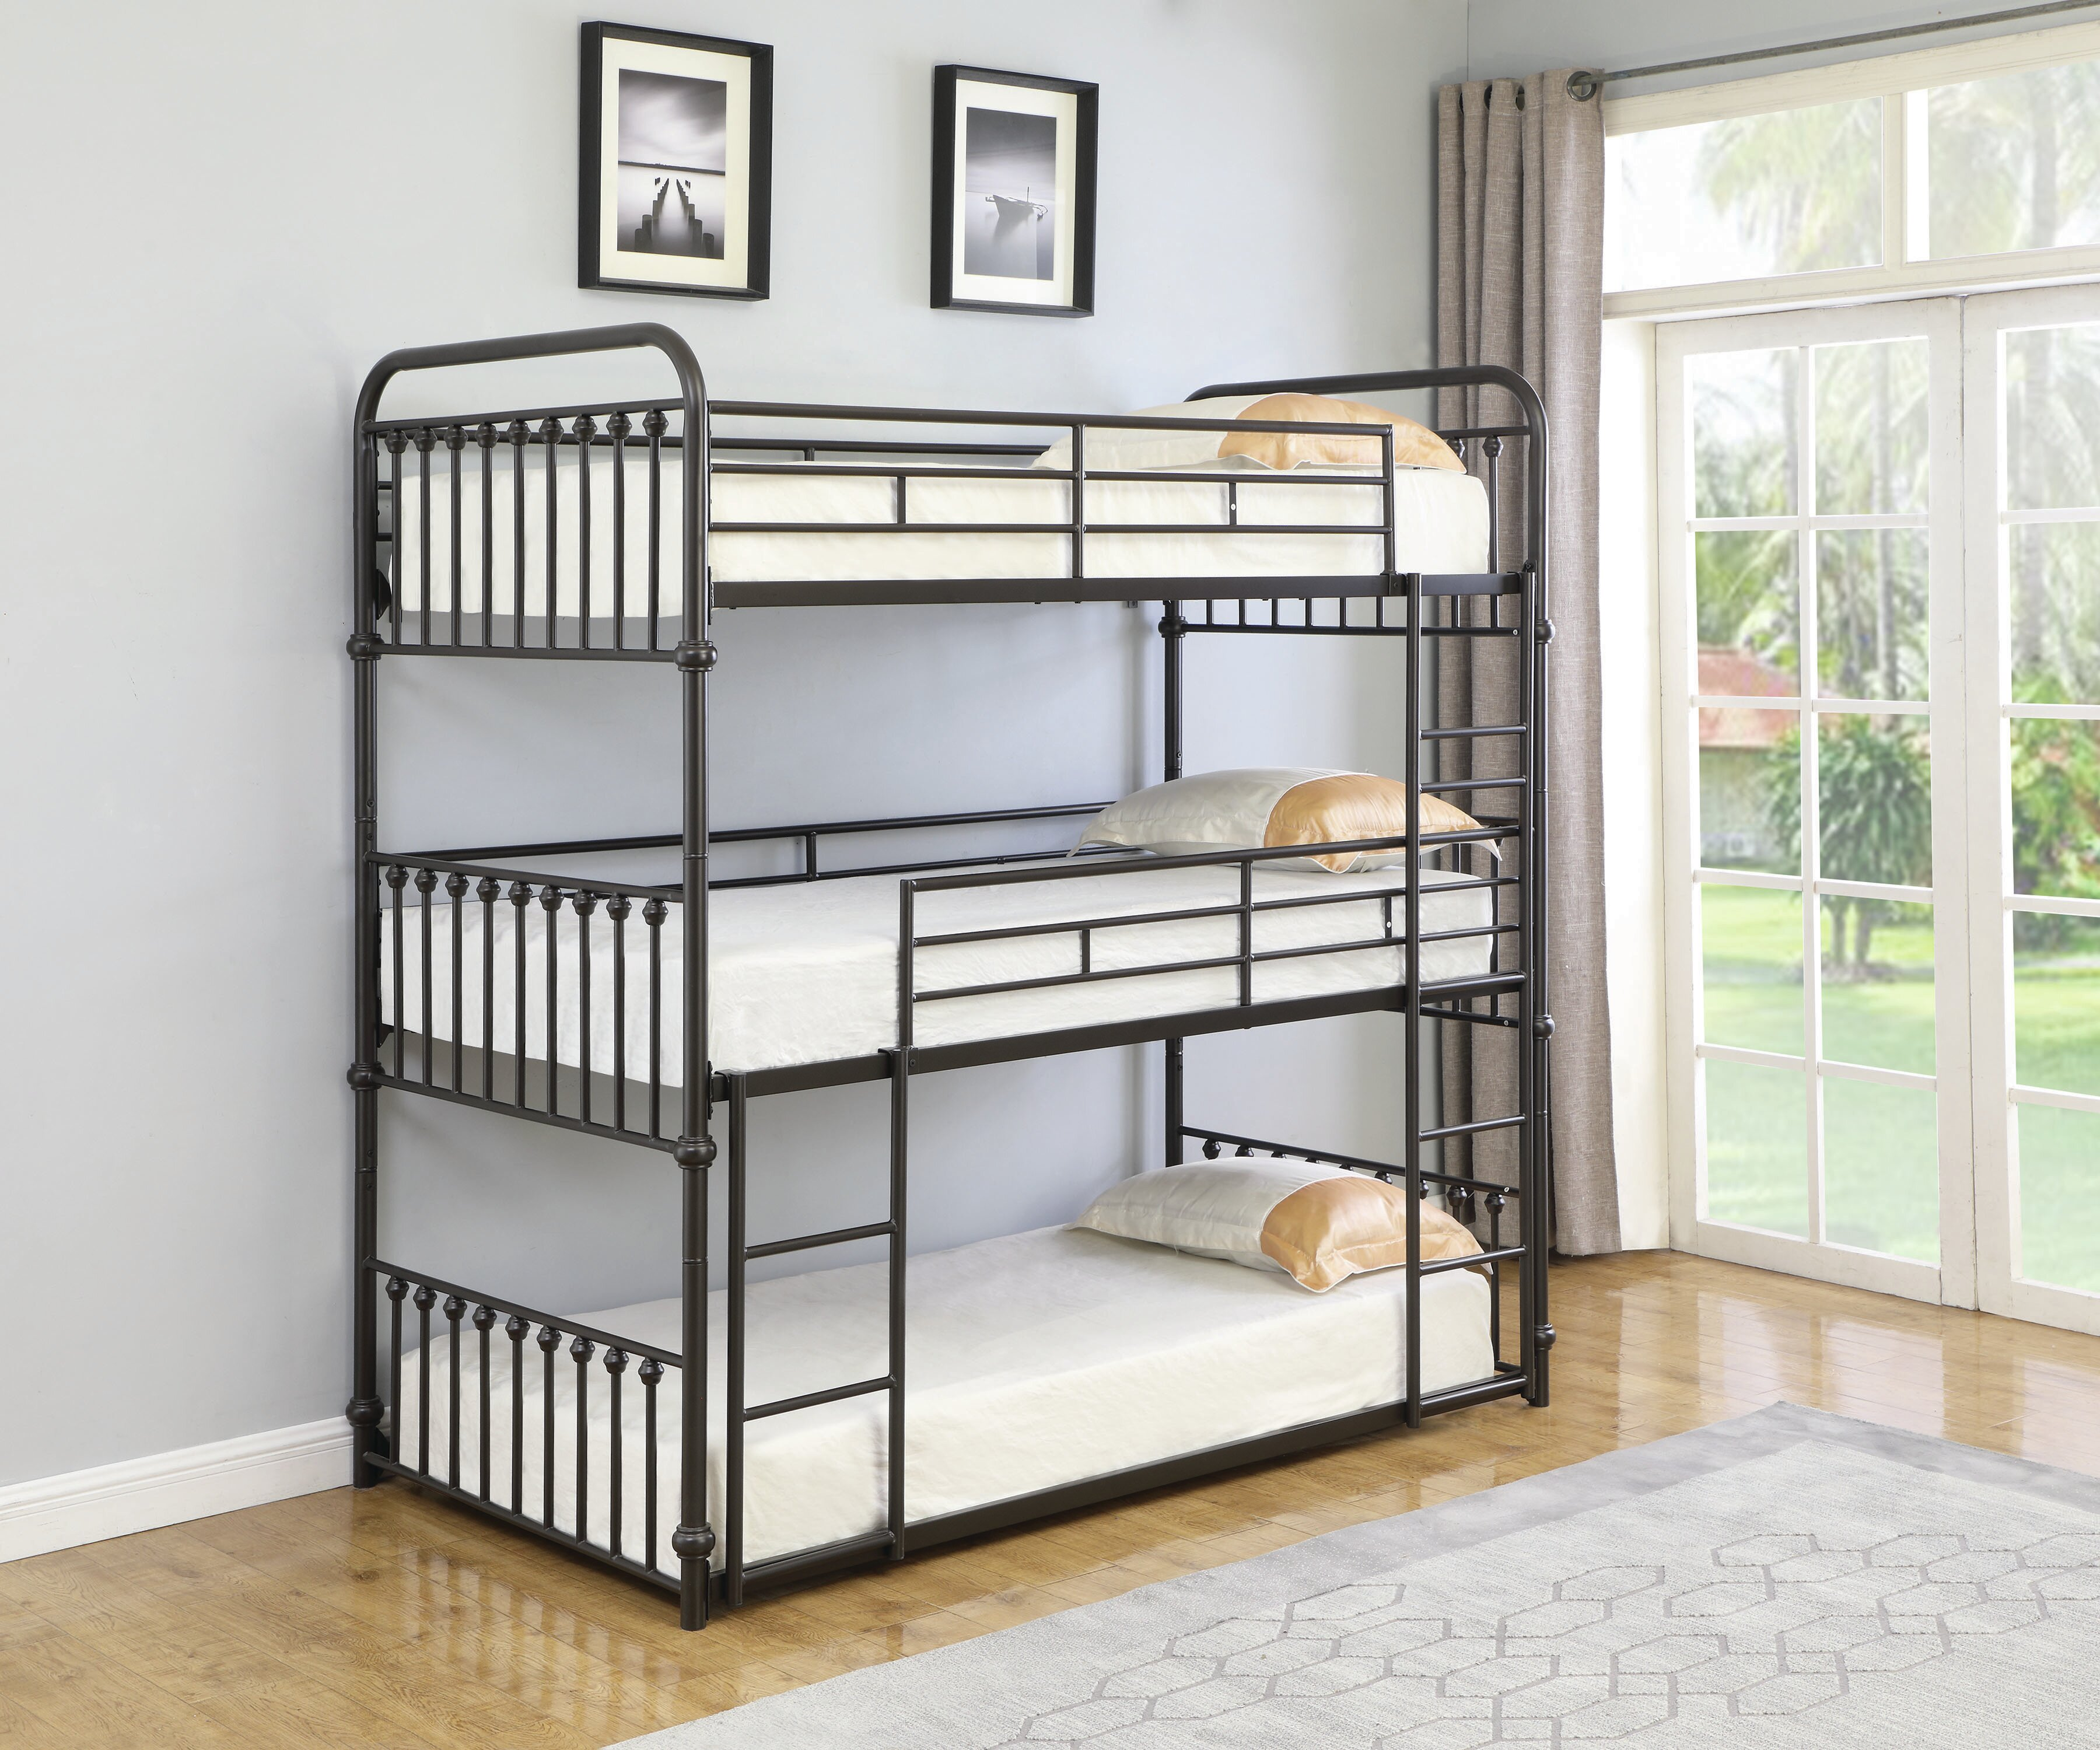 Image result for metal bed triple bunk bed